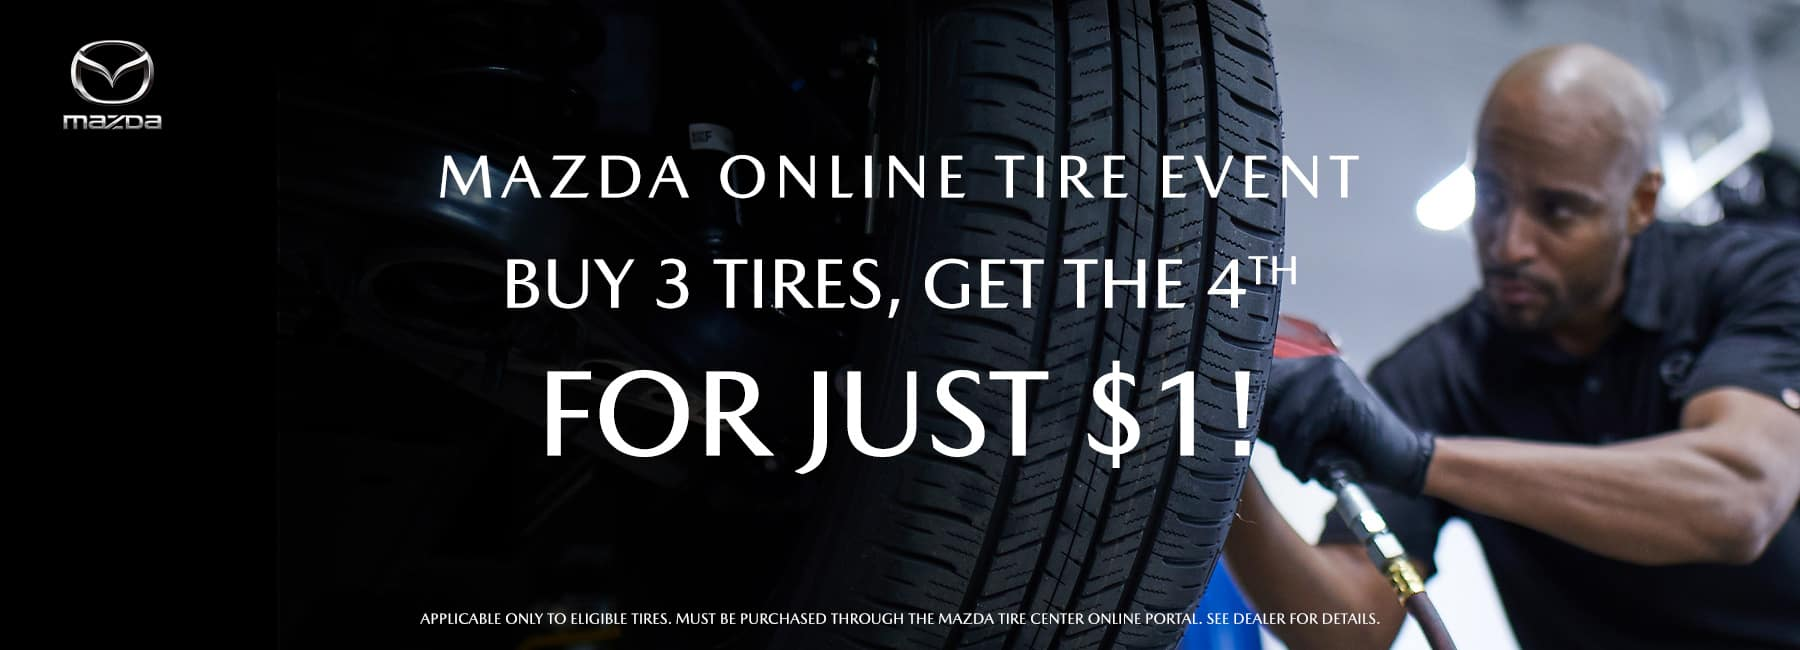 may 21 online tire event